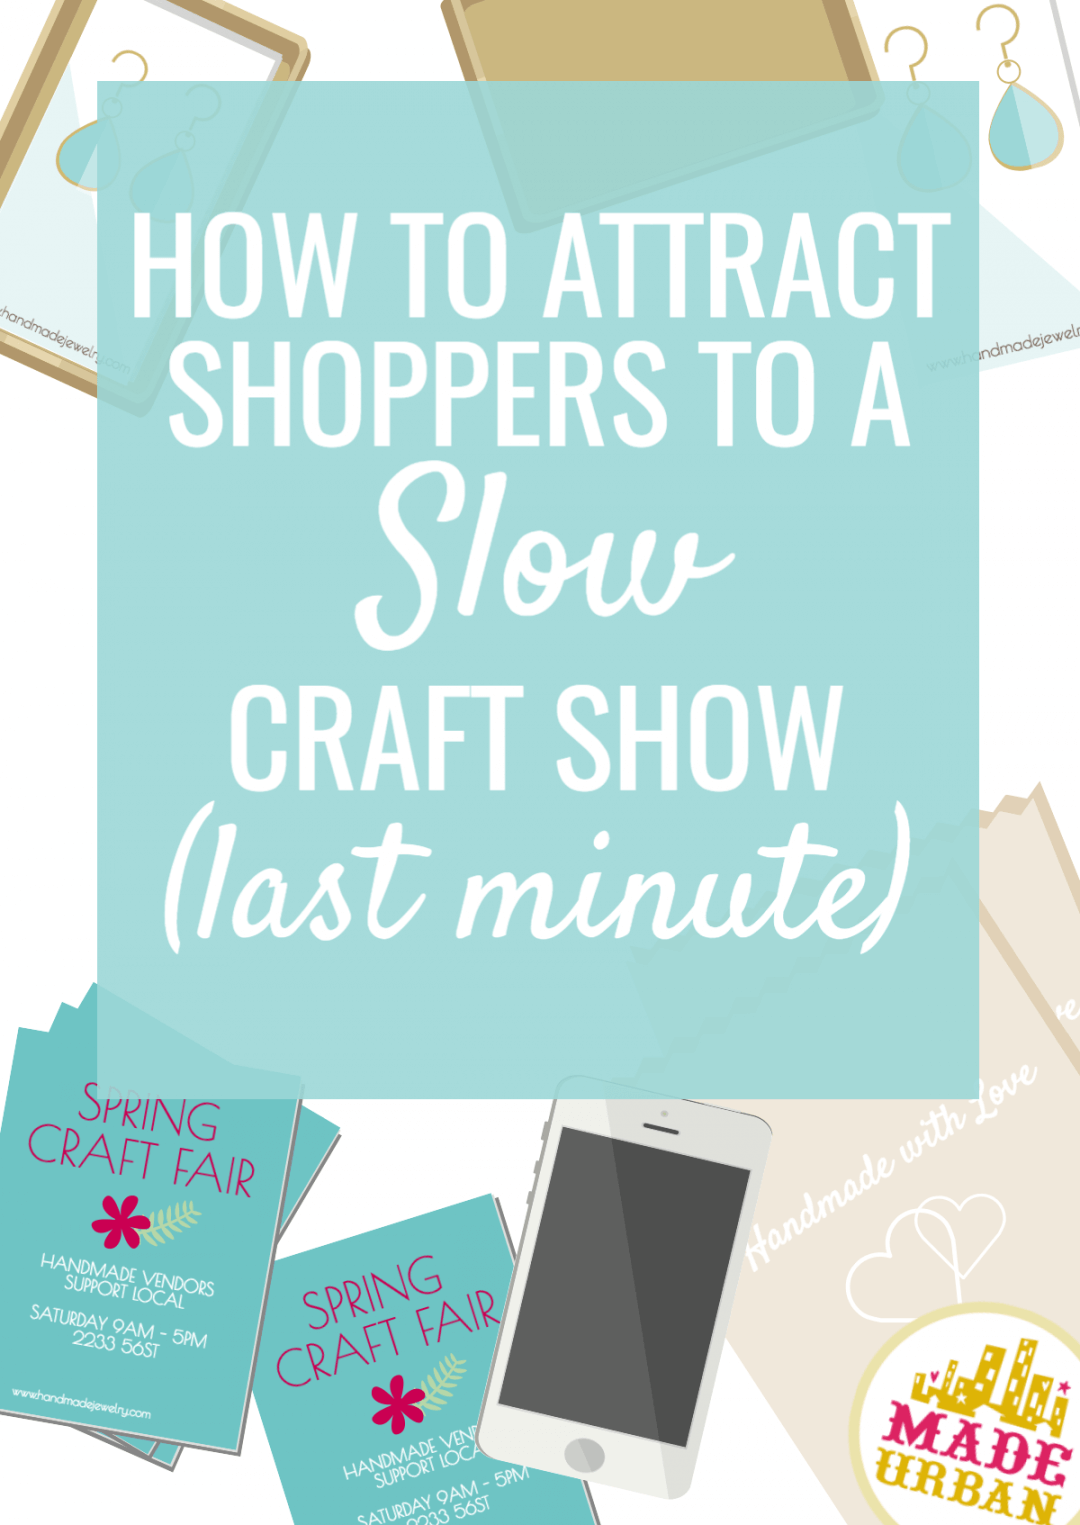 How to Promote a Craft Show Last Minute